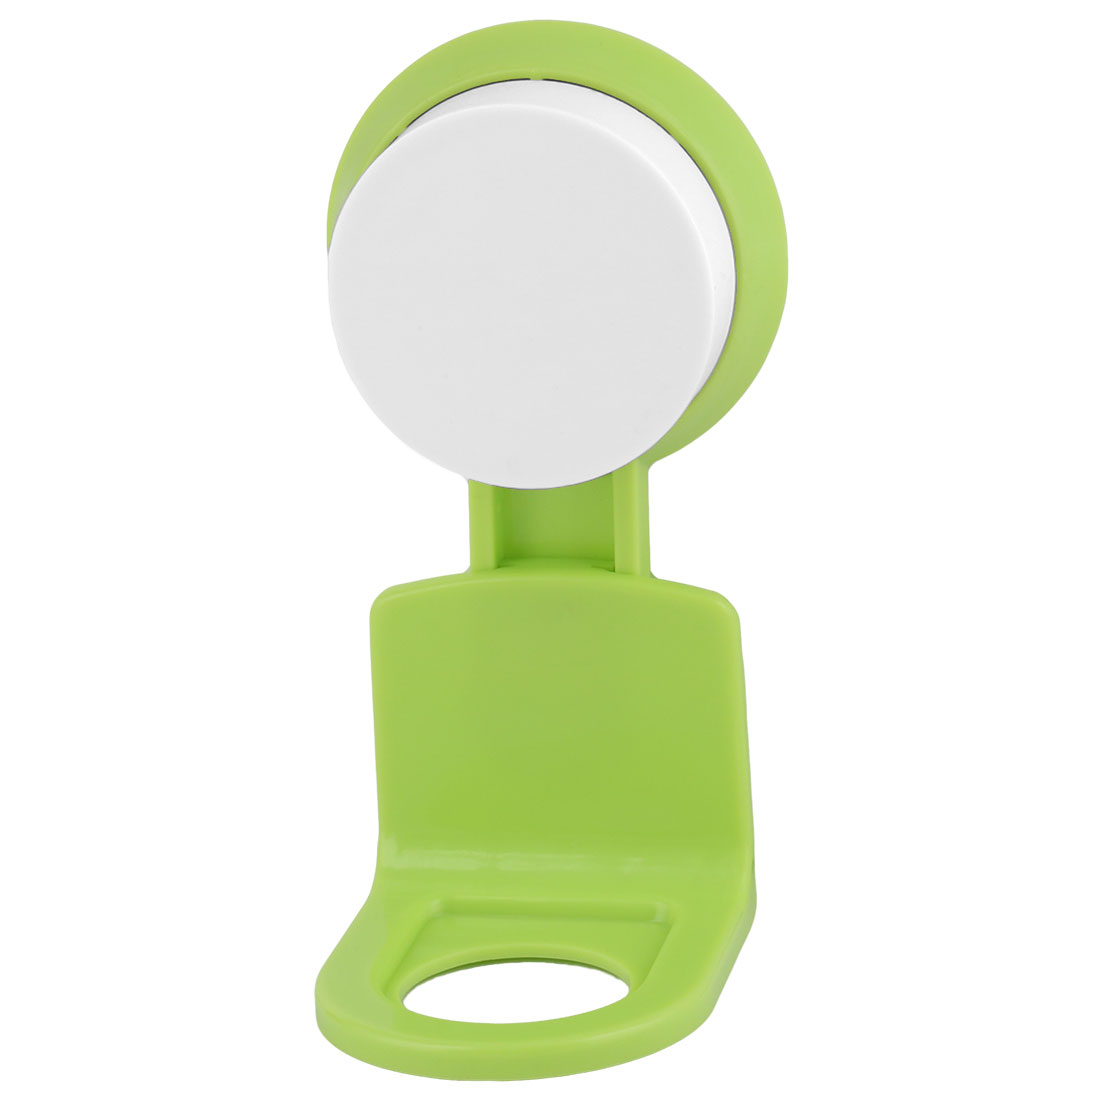 Unique Bargainsbathroom Plastic Wall Mounted Suction Cup Body Wash Shower Gel Holder Rack Green